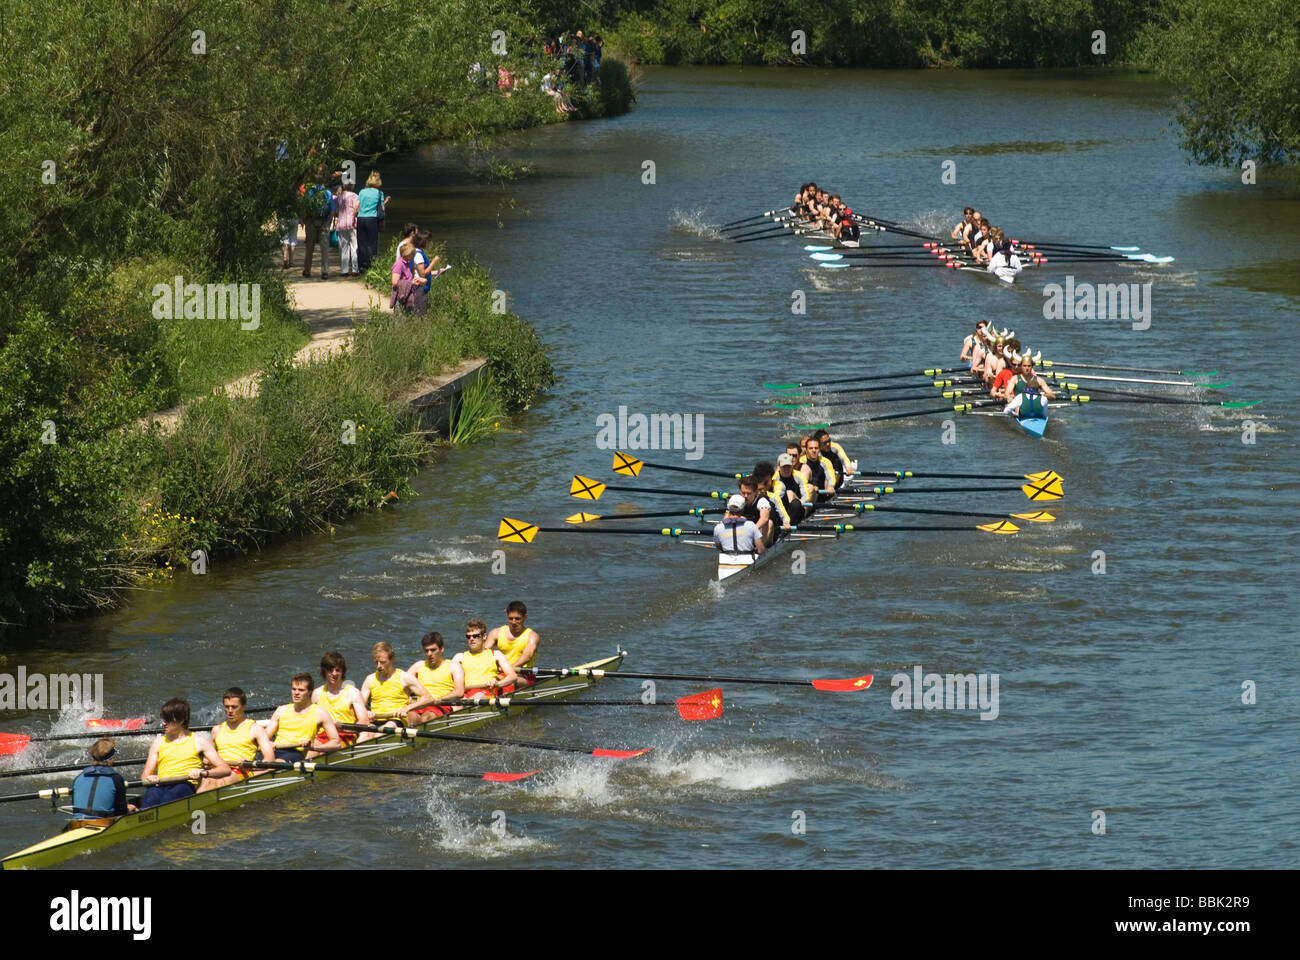 Oxford University Rowing Clubs Eights Week Rowing races on the River Isis actually River Thames in Oxford Oxfordshire - Stock Image